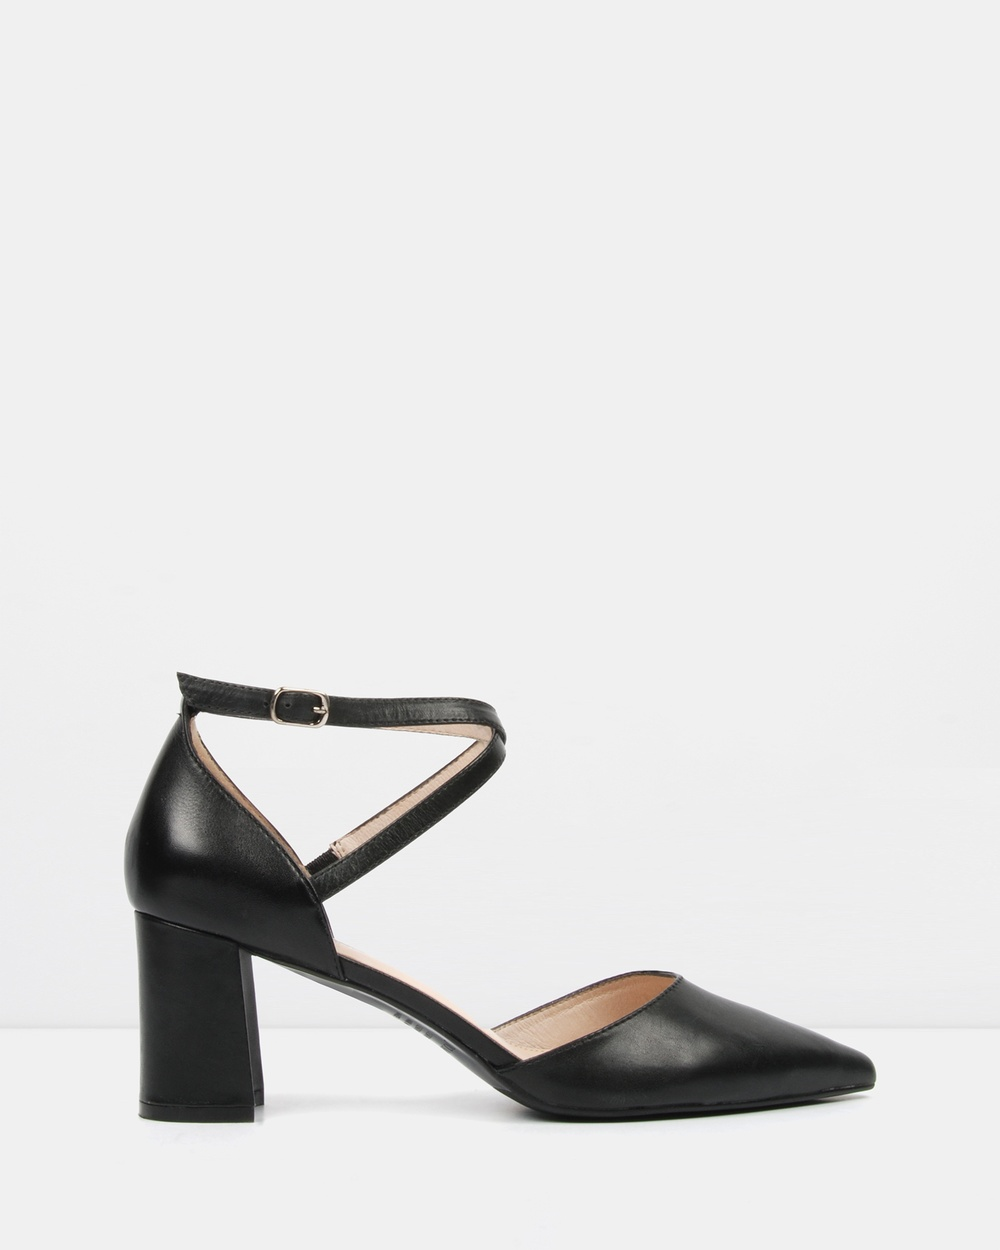 Jo Mercer Iluka Mid Heels Mid-low heels Black Leather Iluka Mid Heels